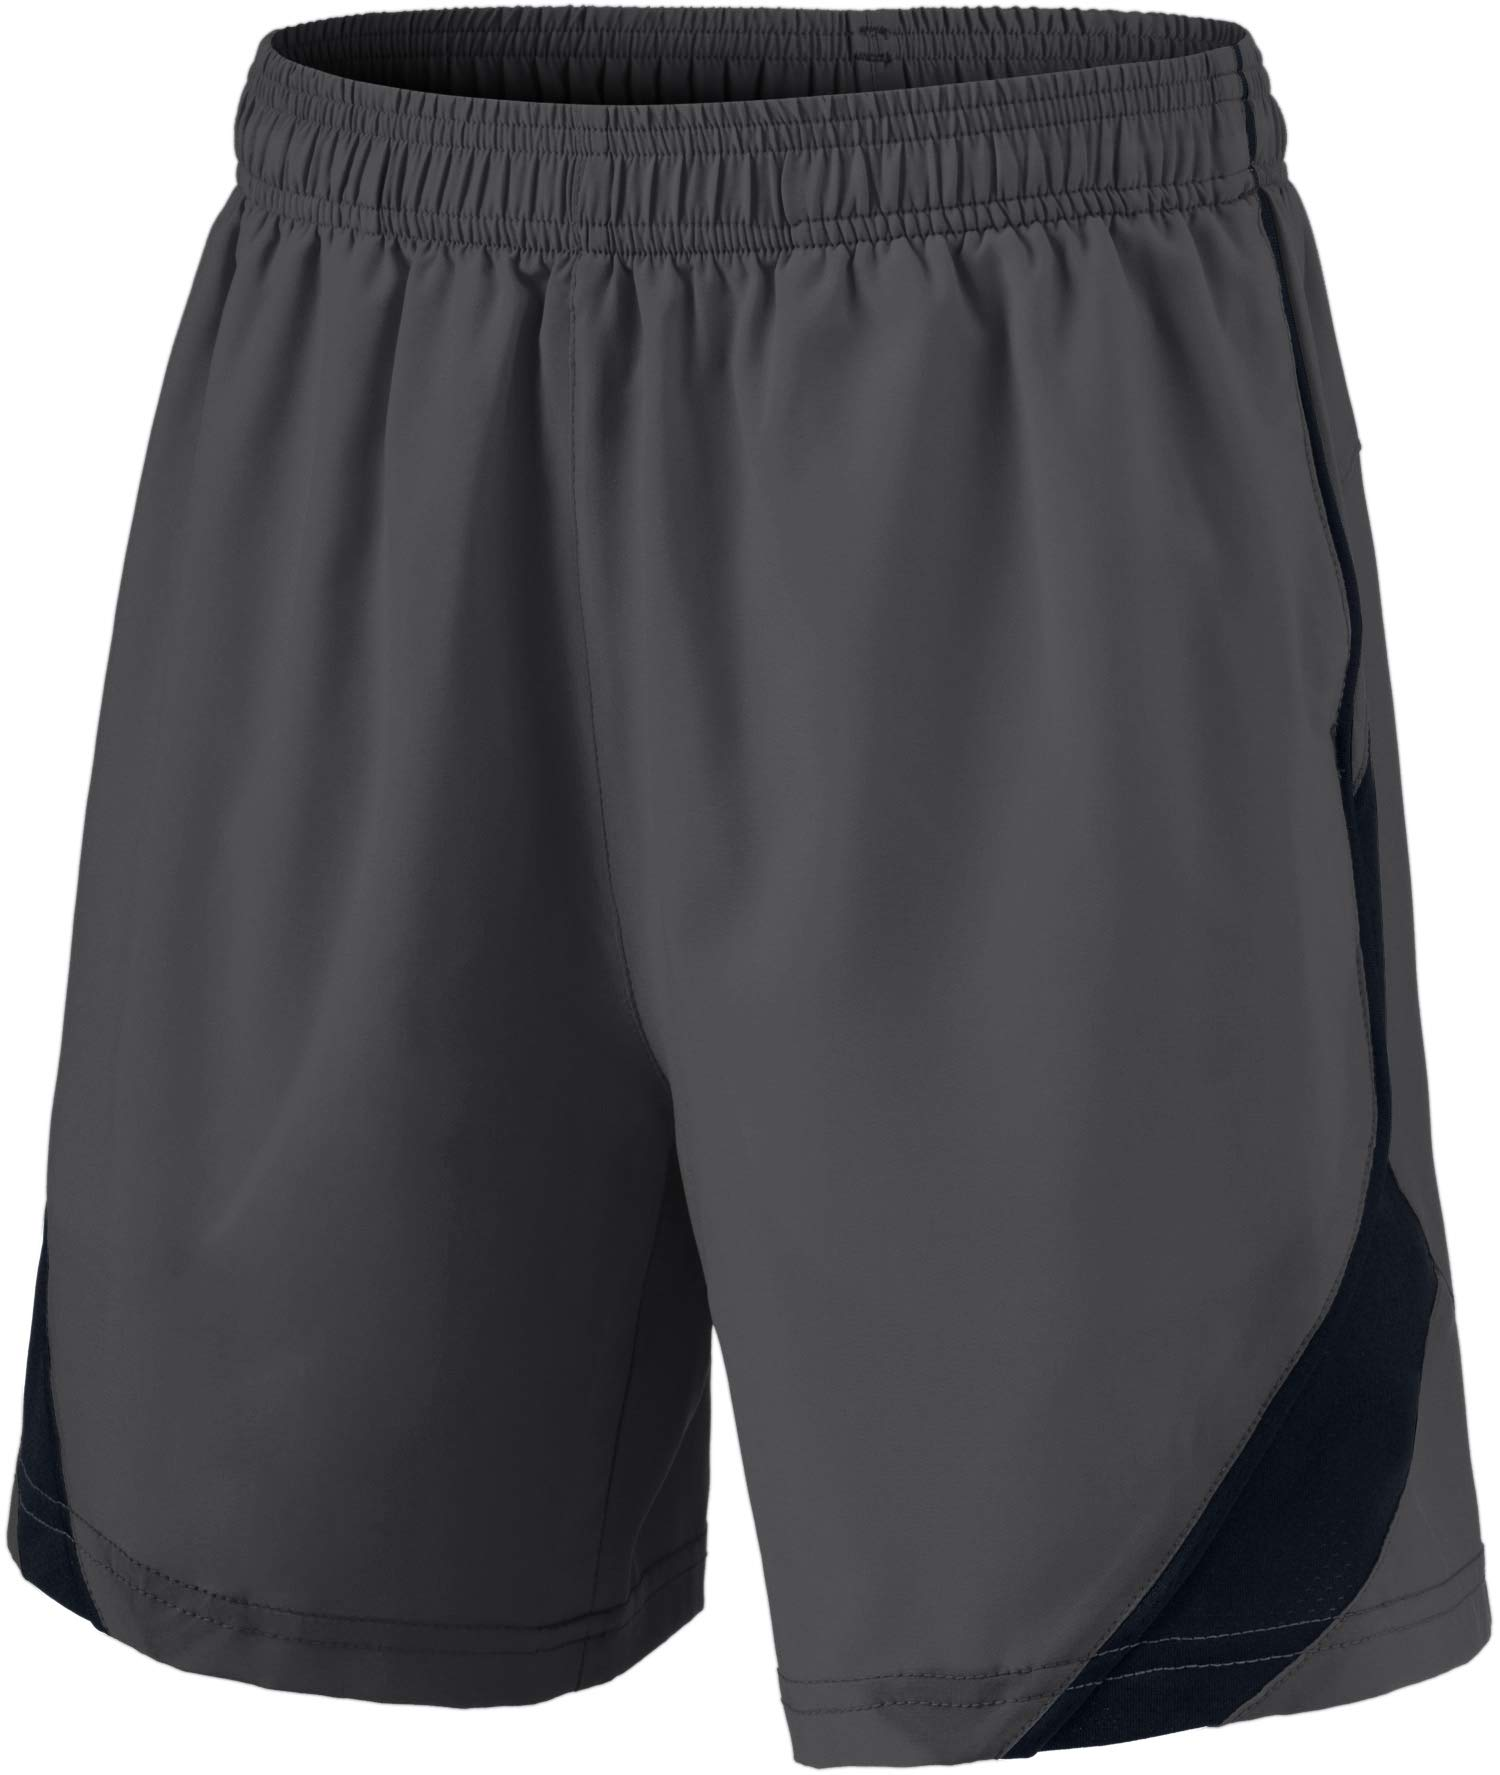 TSLA Boy's Active Shorts Sports Performance Youth HyperDri II w Pockets, Stretch Pace(kbh76) - Dark Grey, Youth Large by TSLA